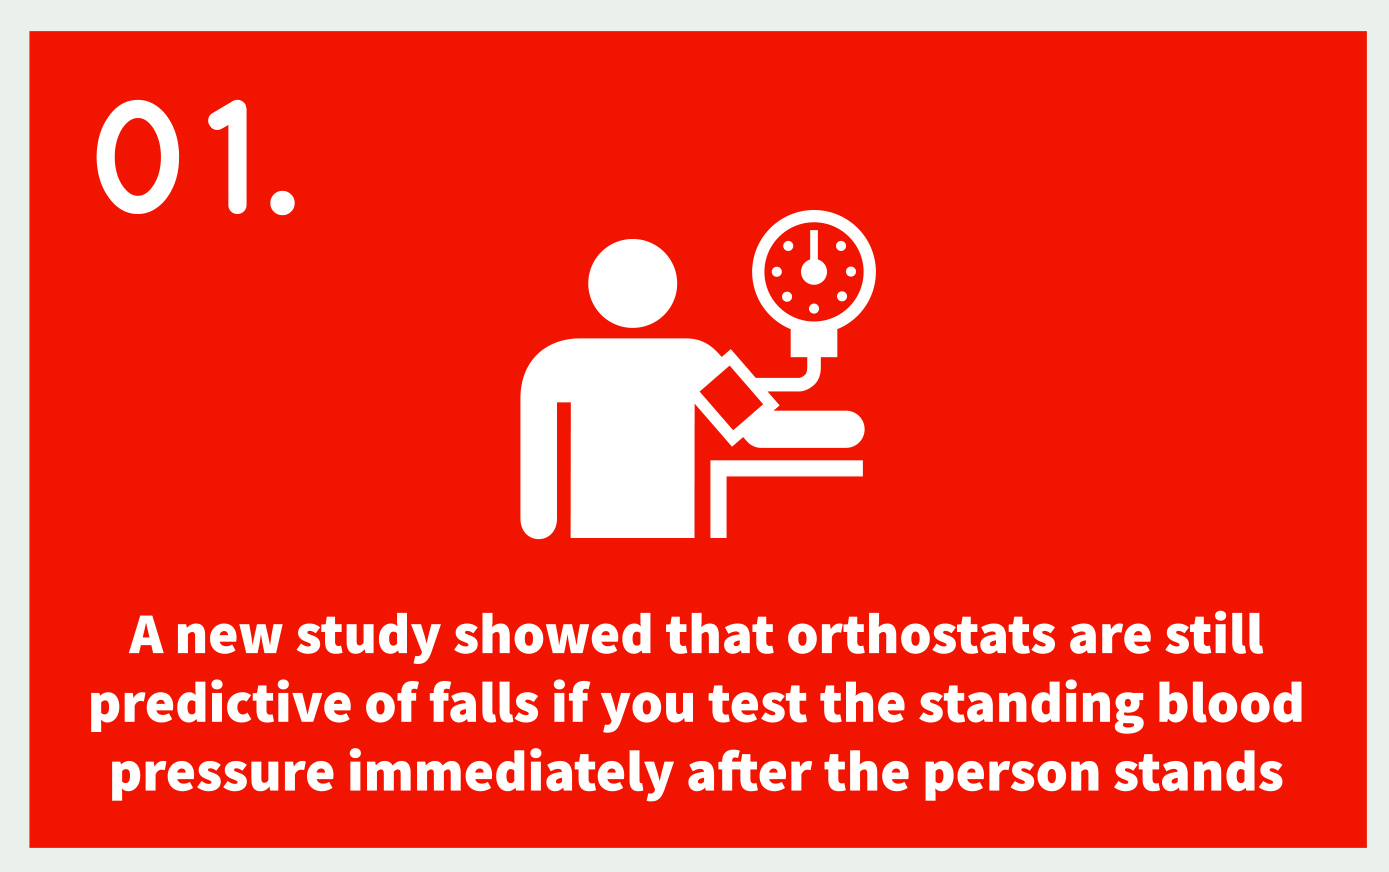 01. Icon: Blood Pressure; Text: A new study showed that orthostats are still predictive of falls if you test the standing blood pressure immediately after the person stands